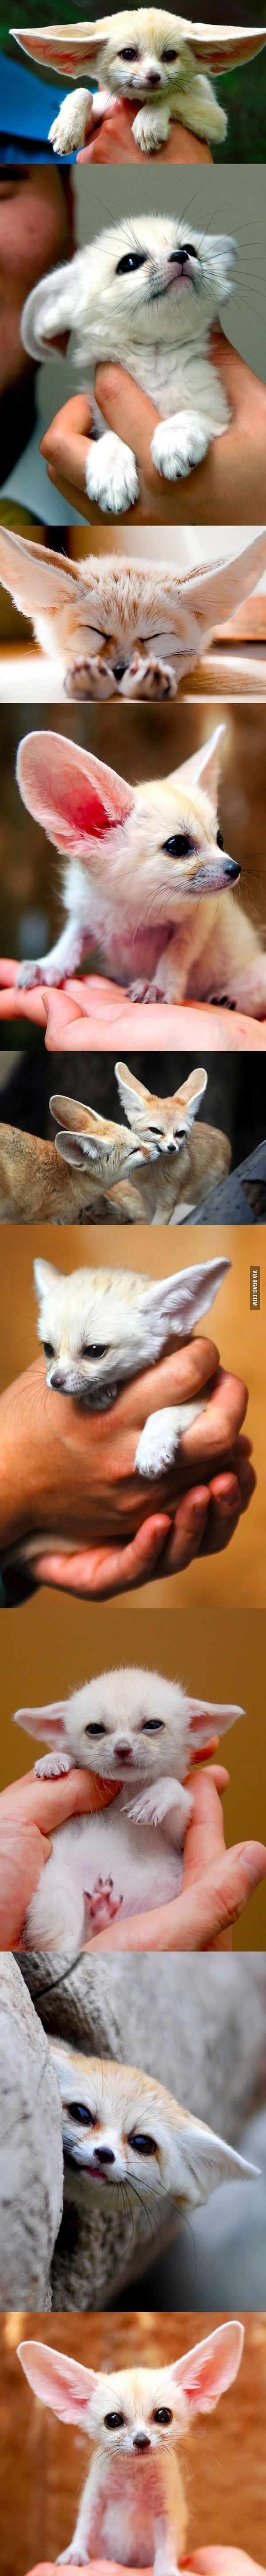 Fennec fox collection #CatFace